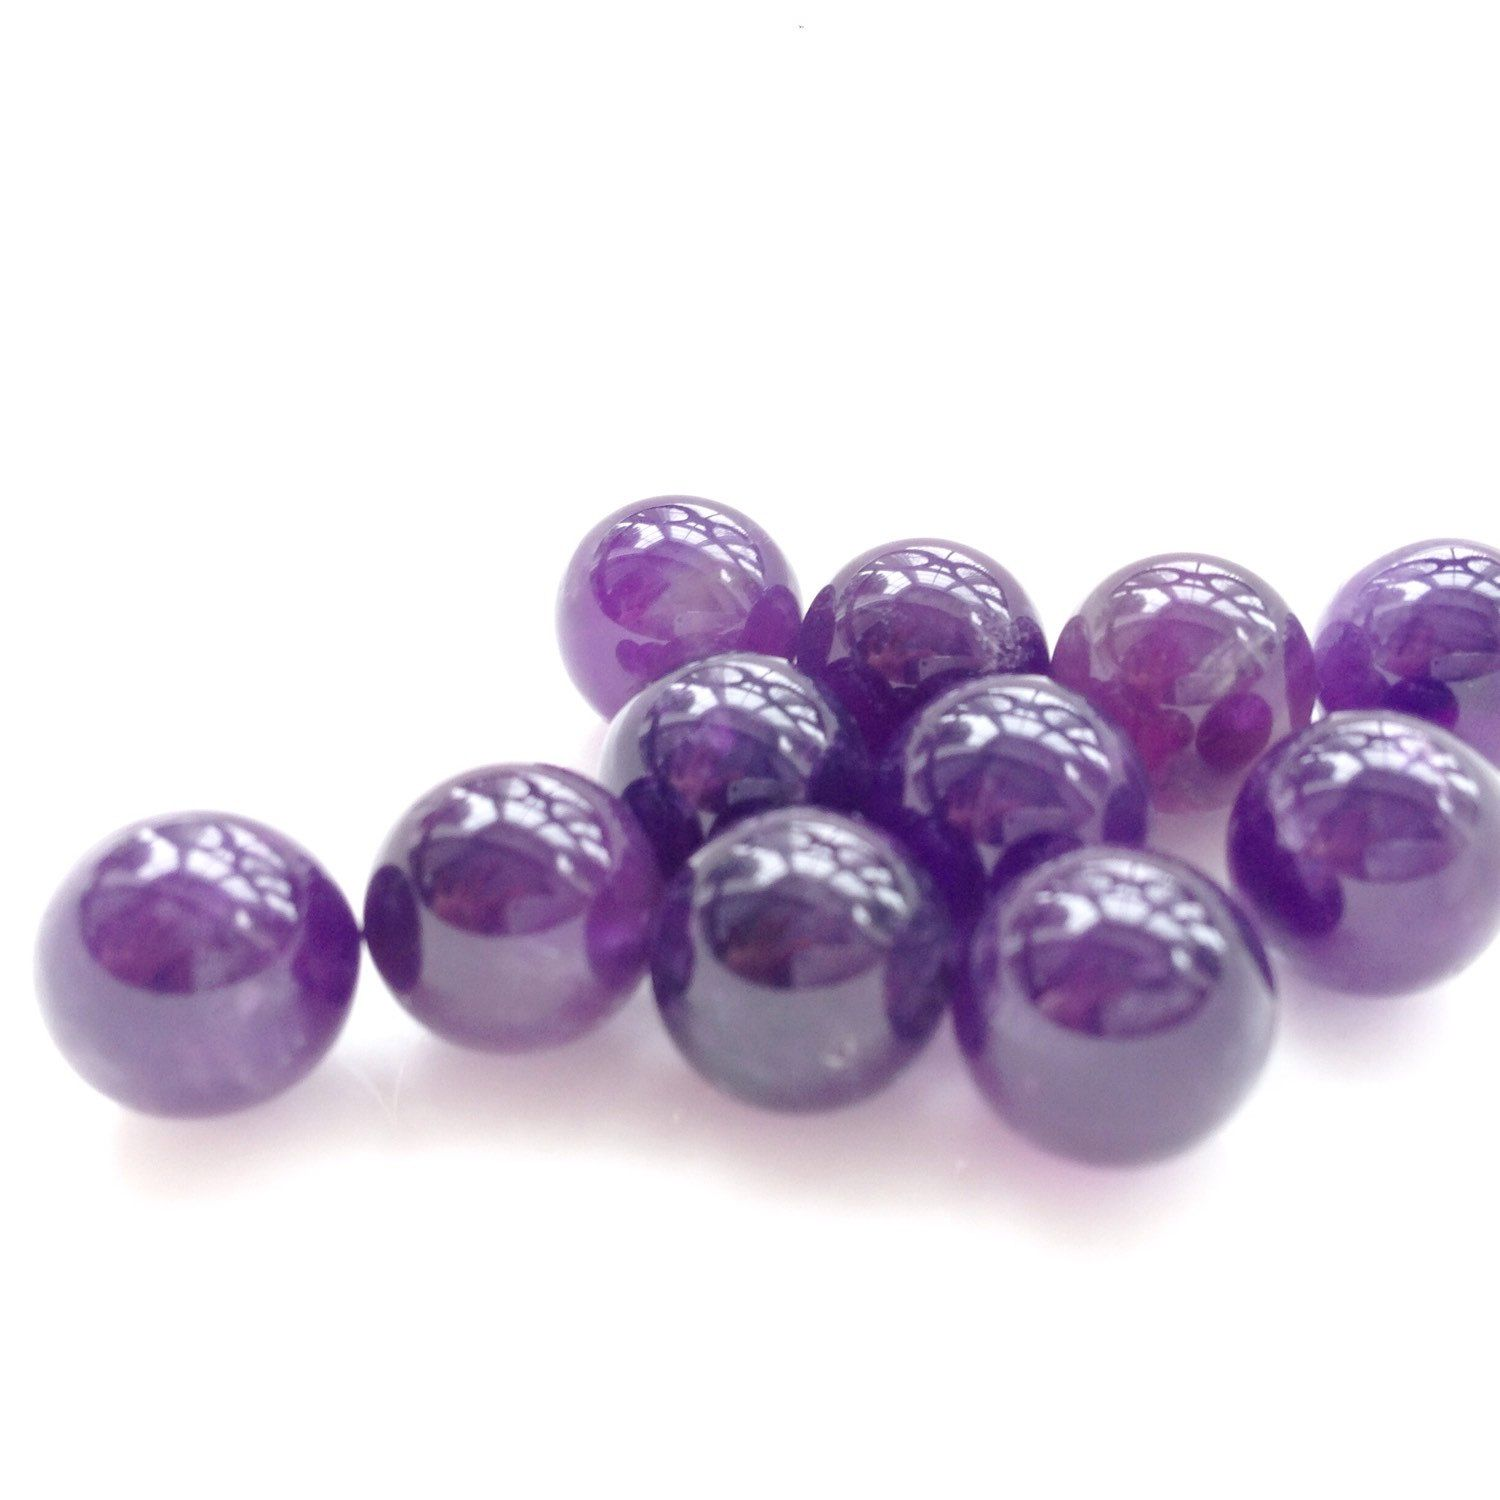 3 Amethyst 10mm Spheres Amethyst Crystal Balls Round Spheres Undrilled Amethyst No Hole Cage Jewelry Amethyst Crystal Crystals And Gemstones Chakra Beads